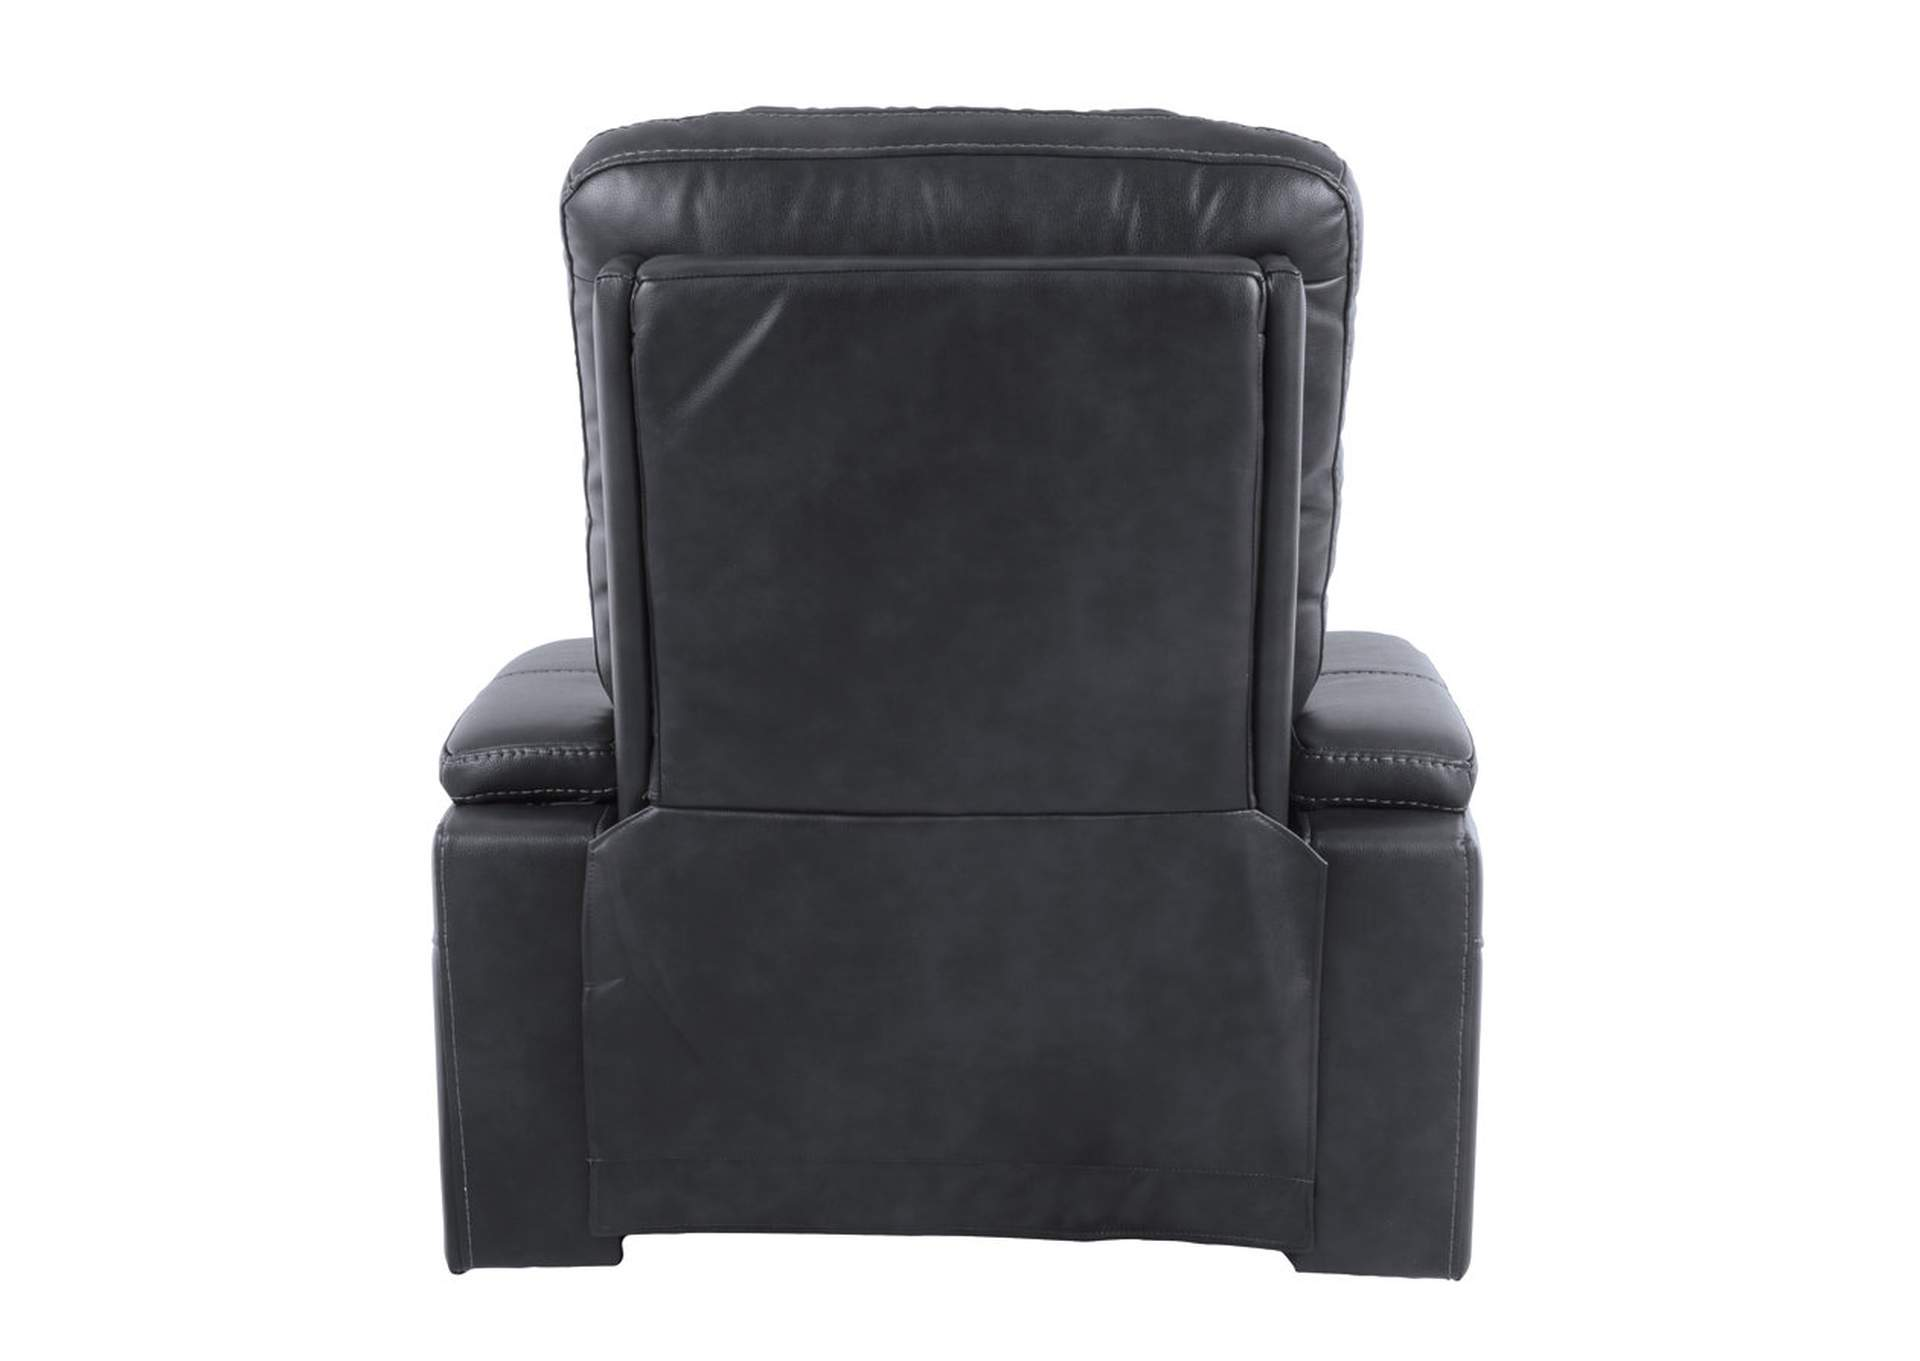 Composer Gray Power Recliner,Signature Design By Ashley